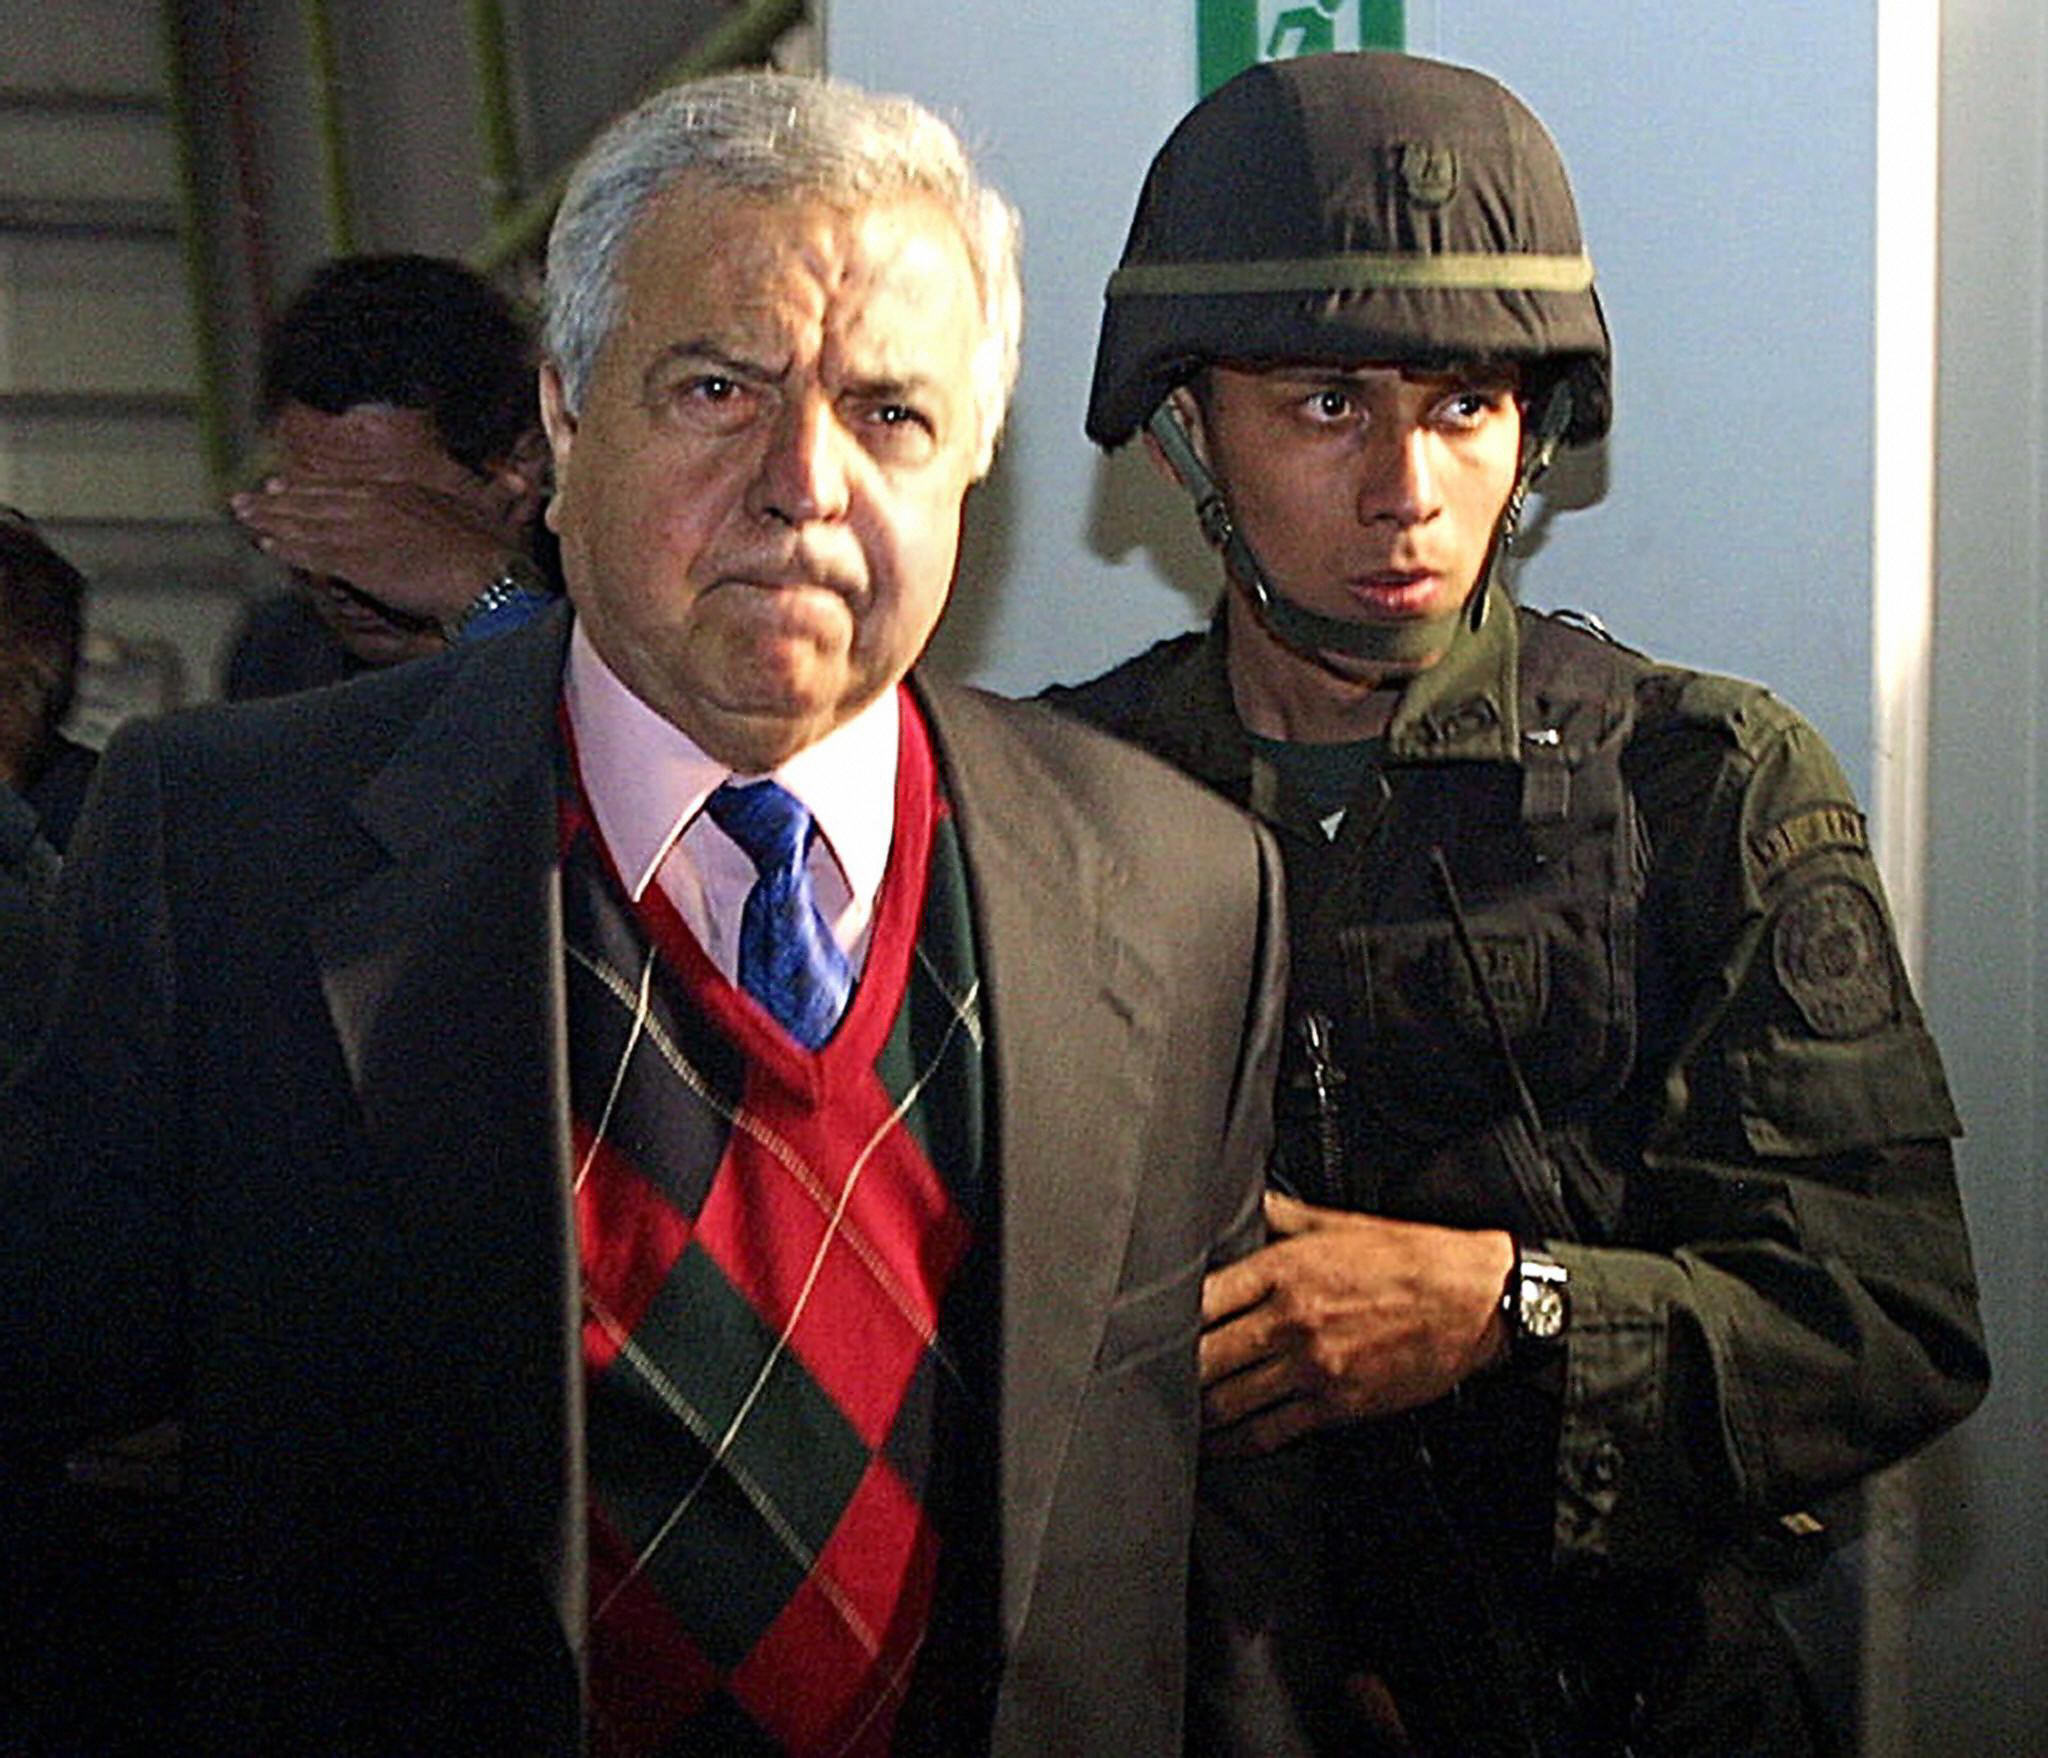 Gilberto Rodriguez Orejuela, 63, a leader of the Cali drug cartel